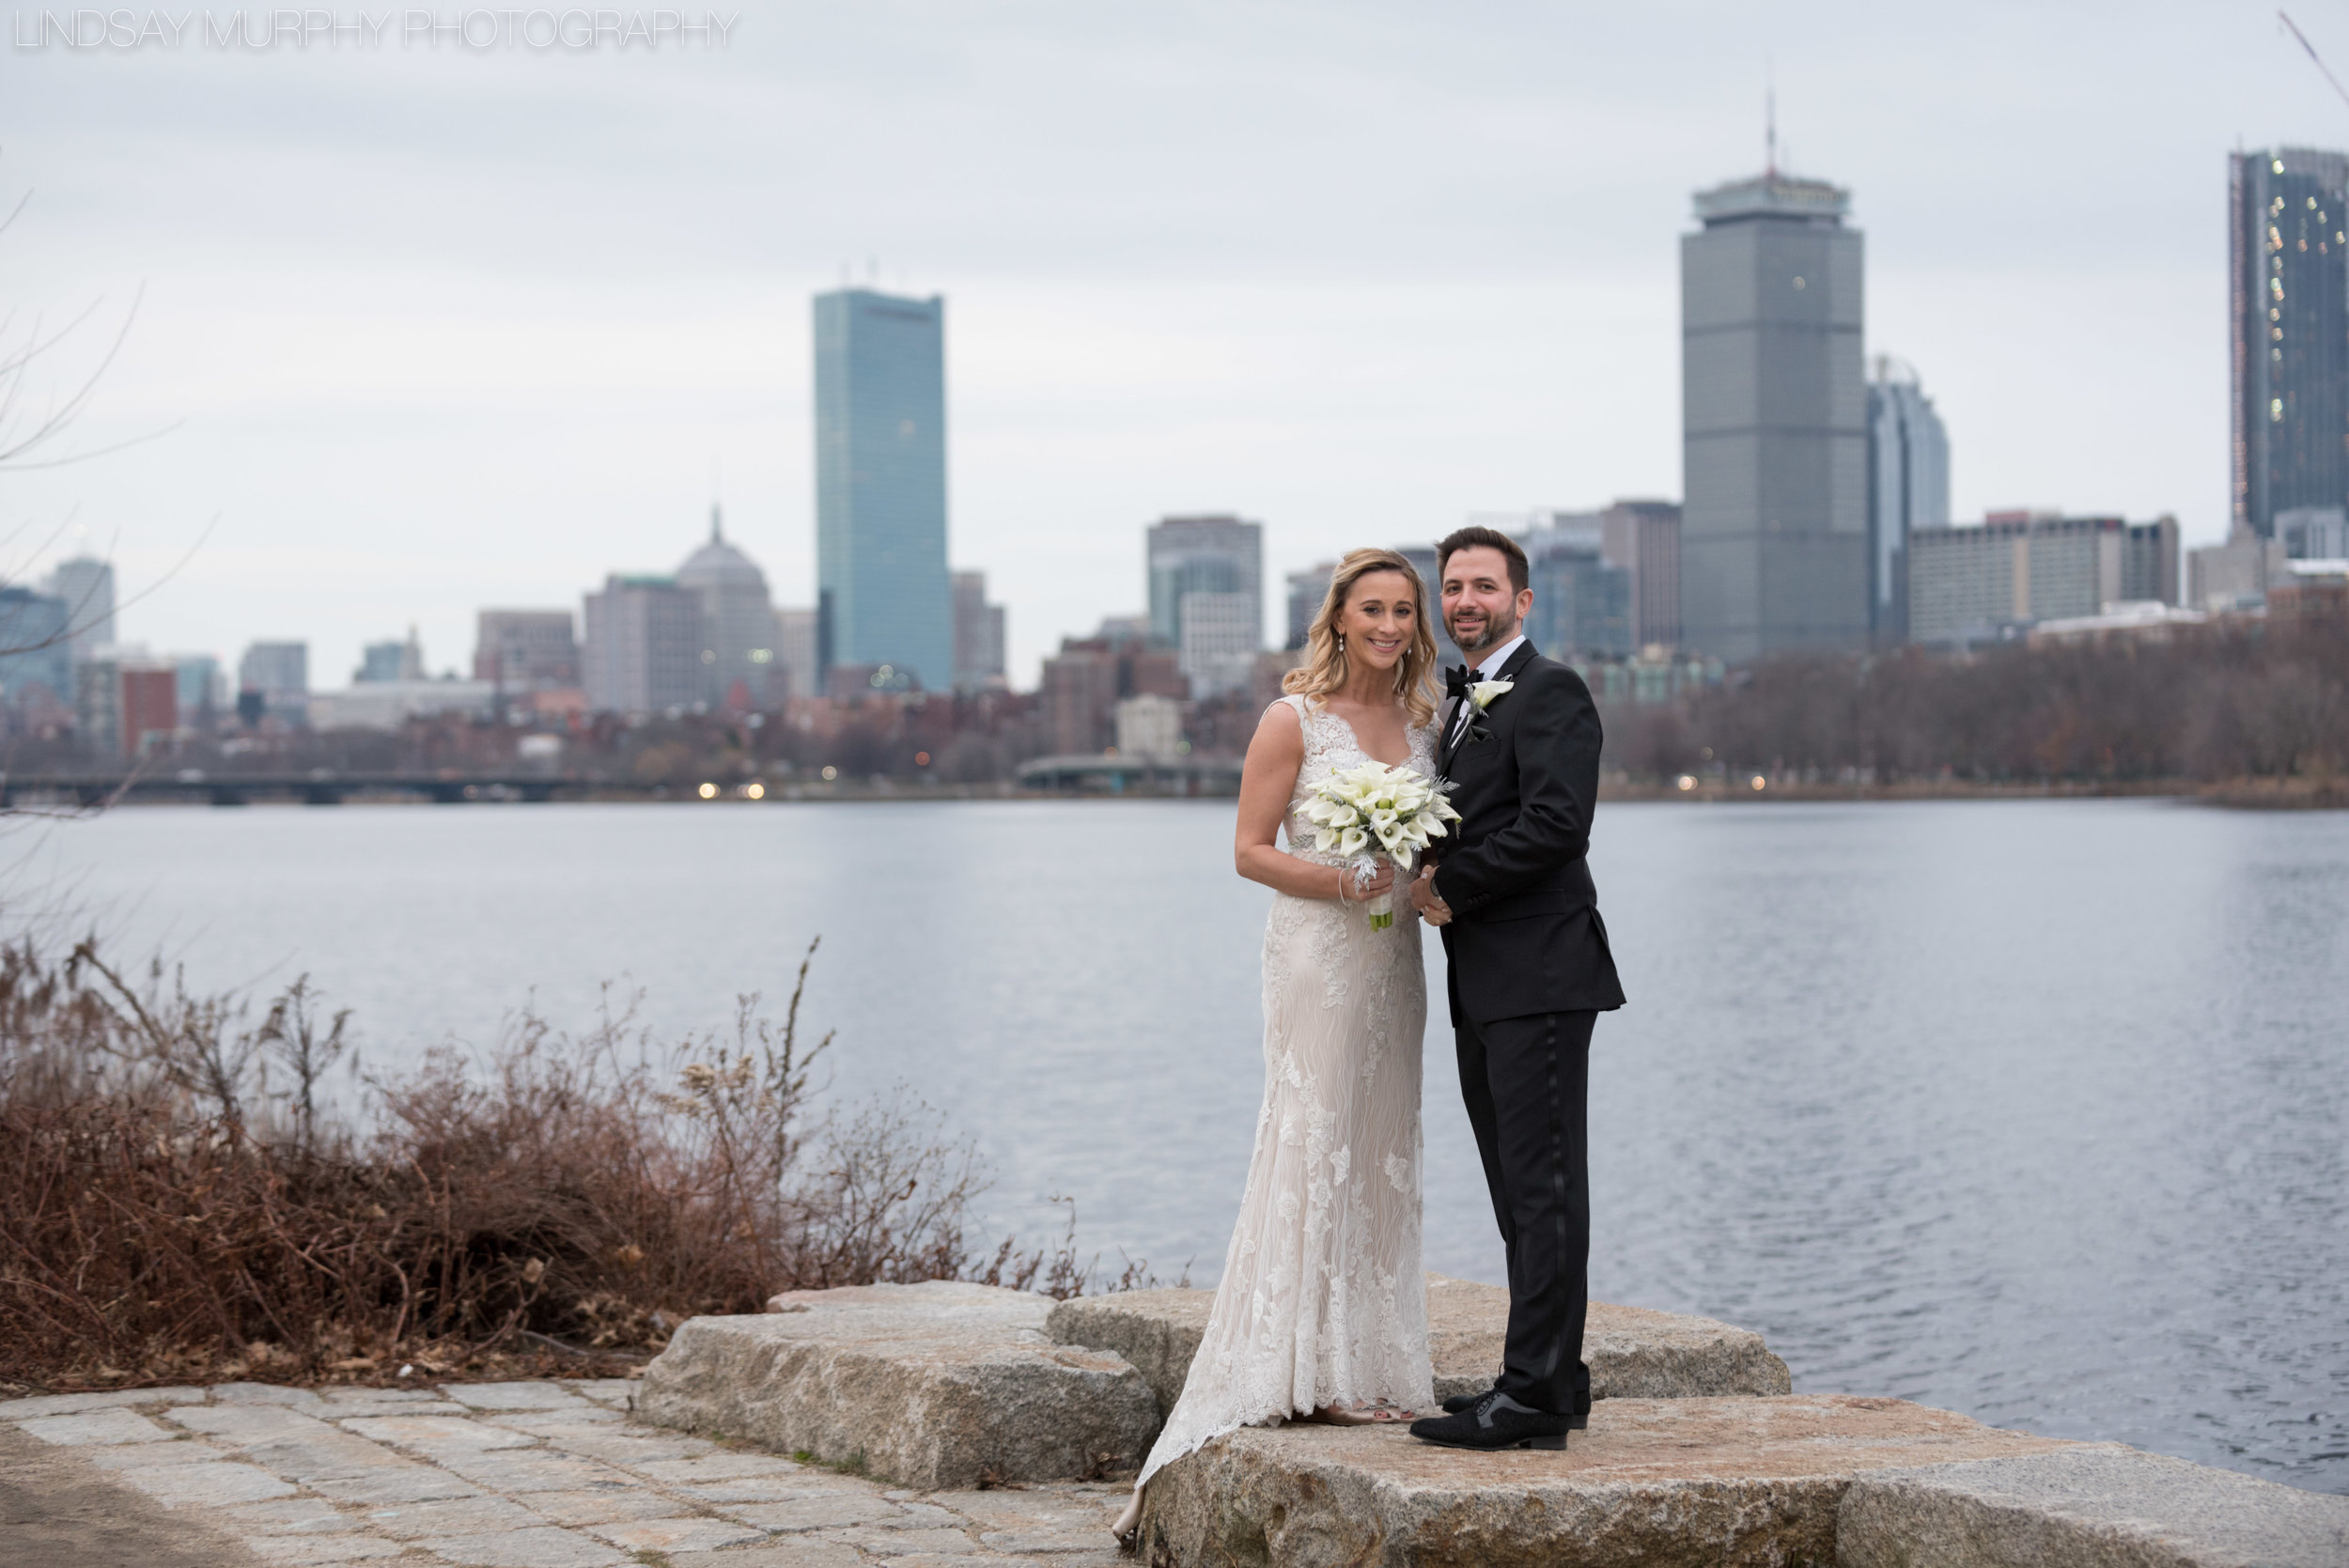 boston_wedding_photographer-170.jpg